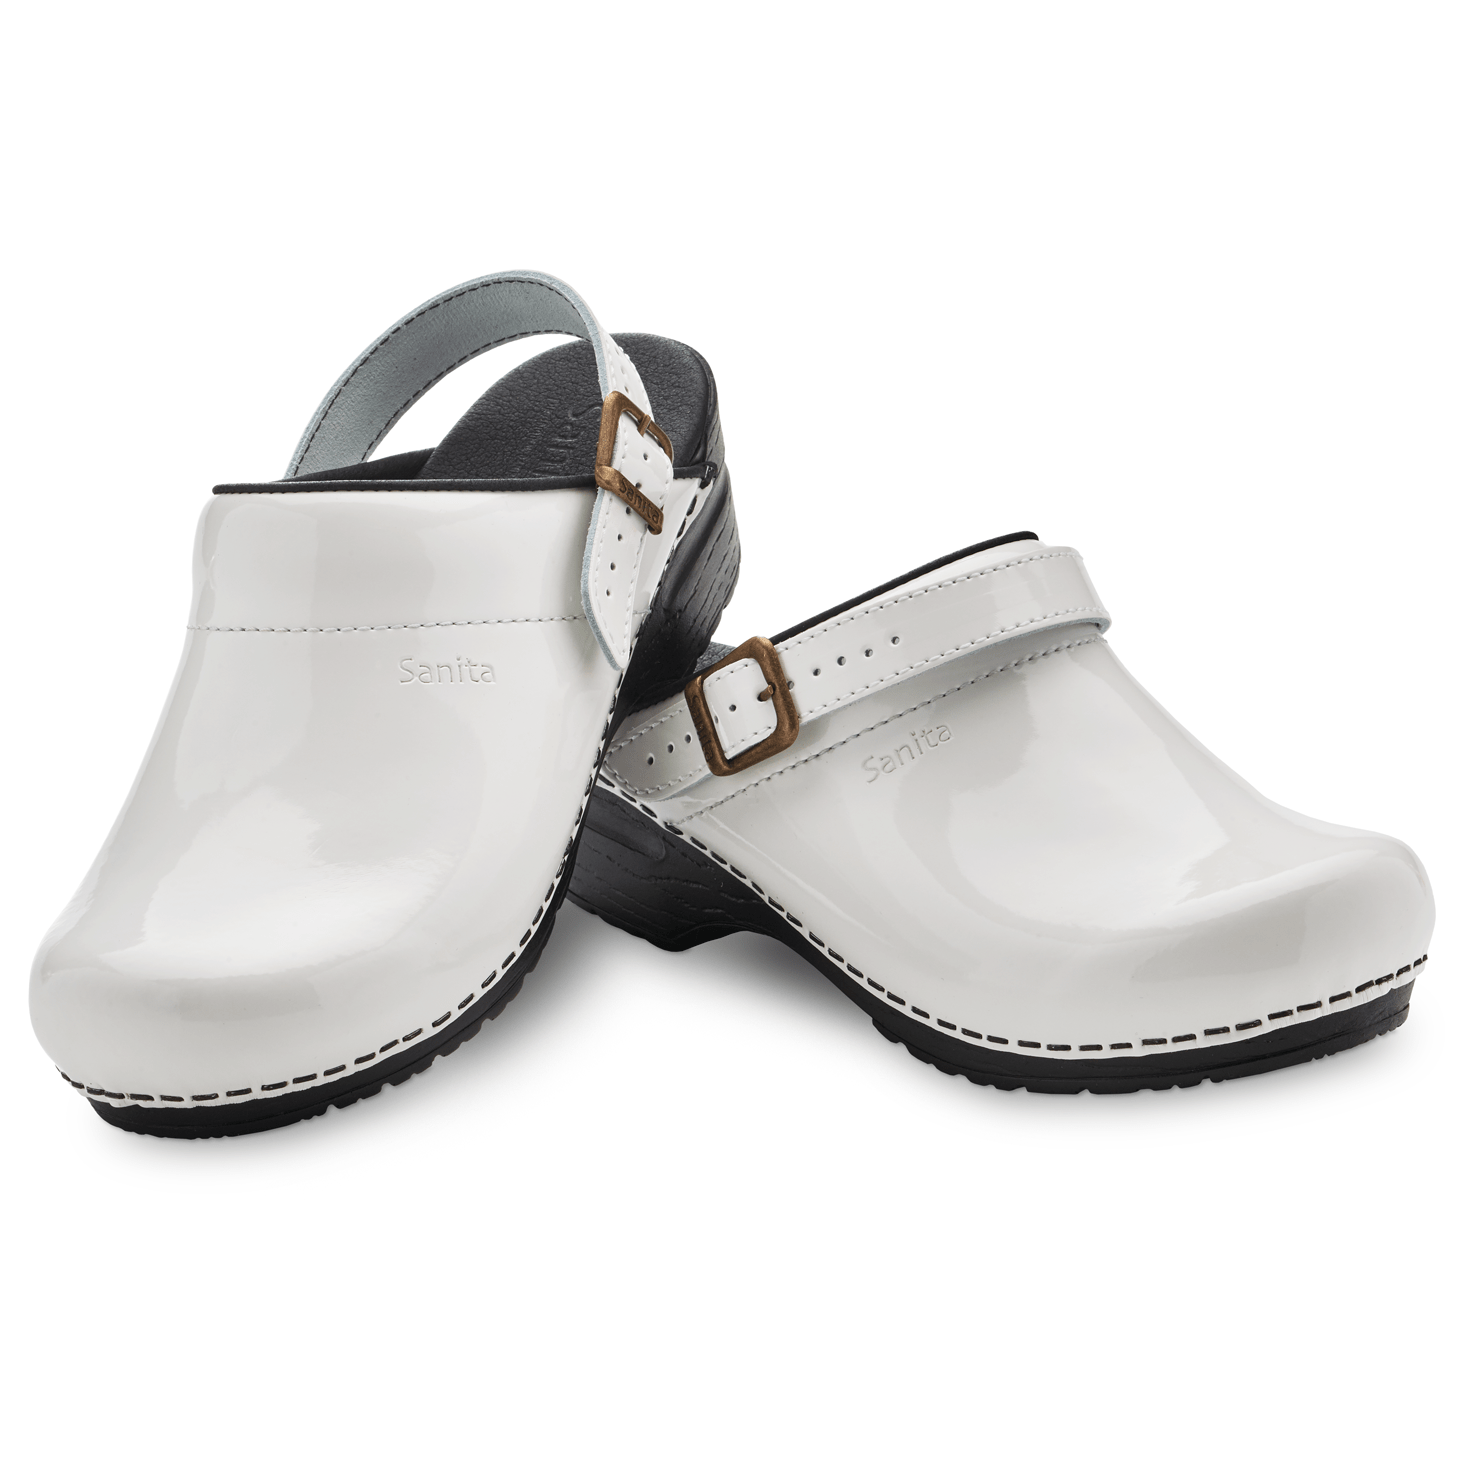 Sanita Estelle Women's in White Open Back Clog